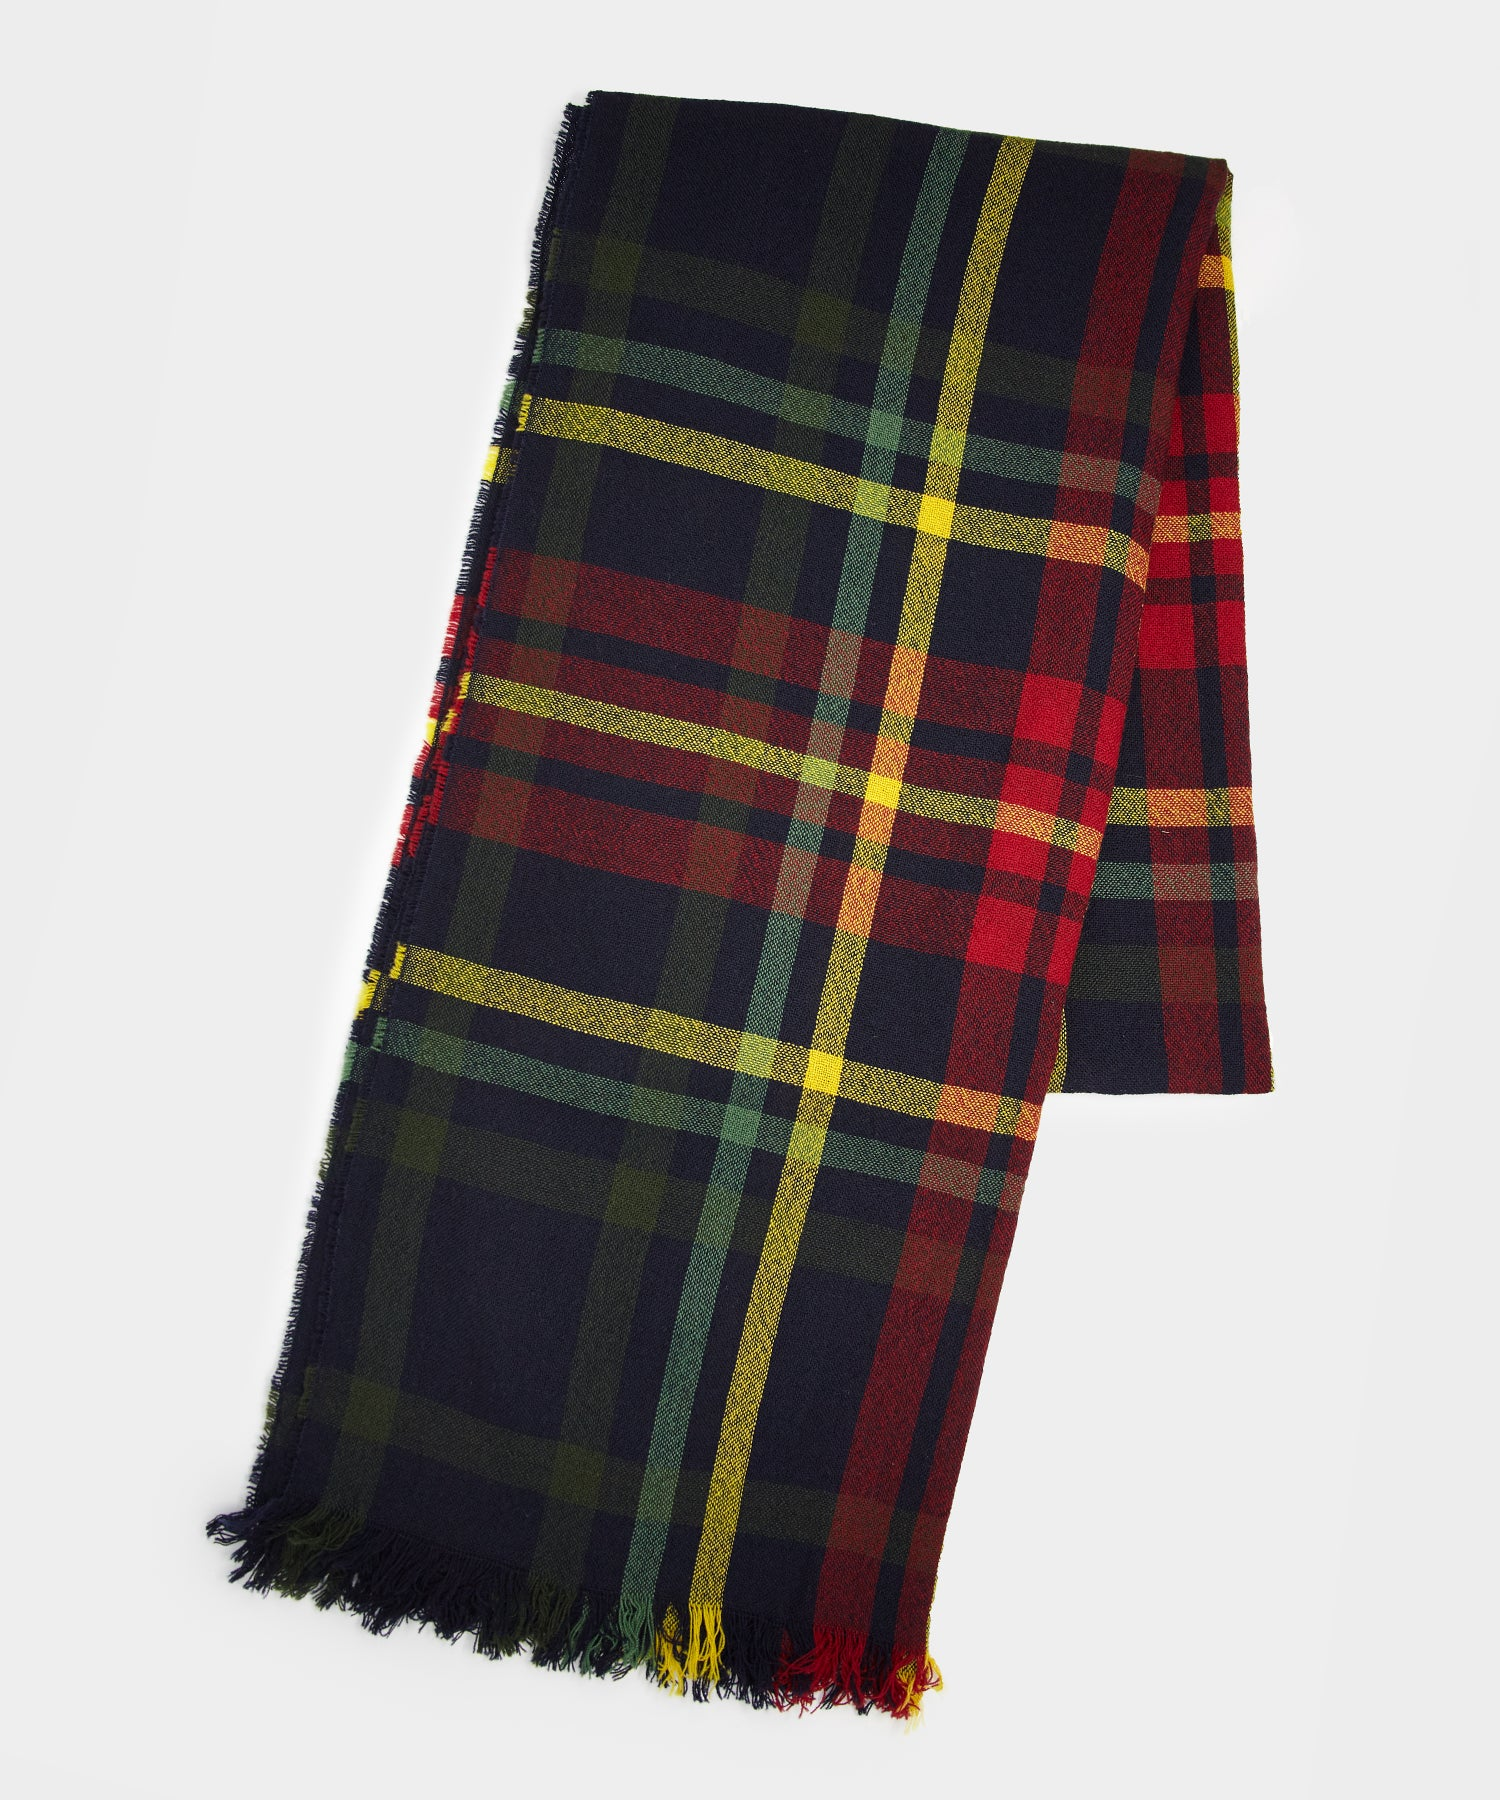 Drake's Merino Crinkle Scarf in Green/Red Plaid